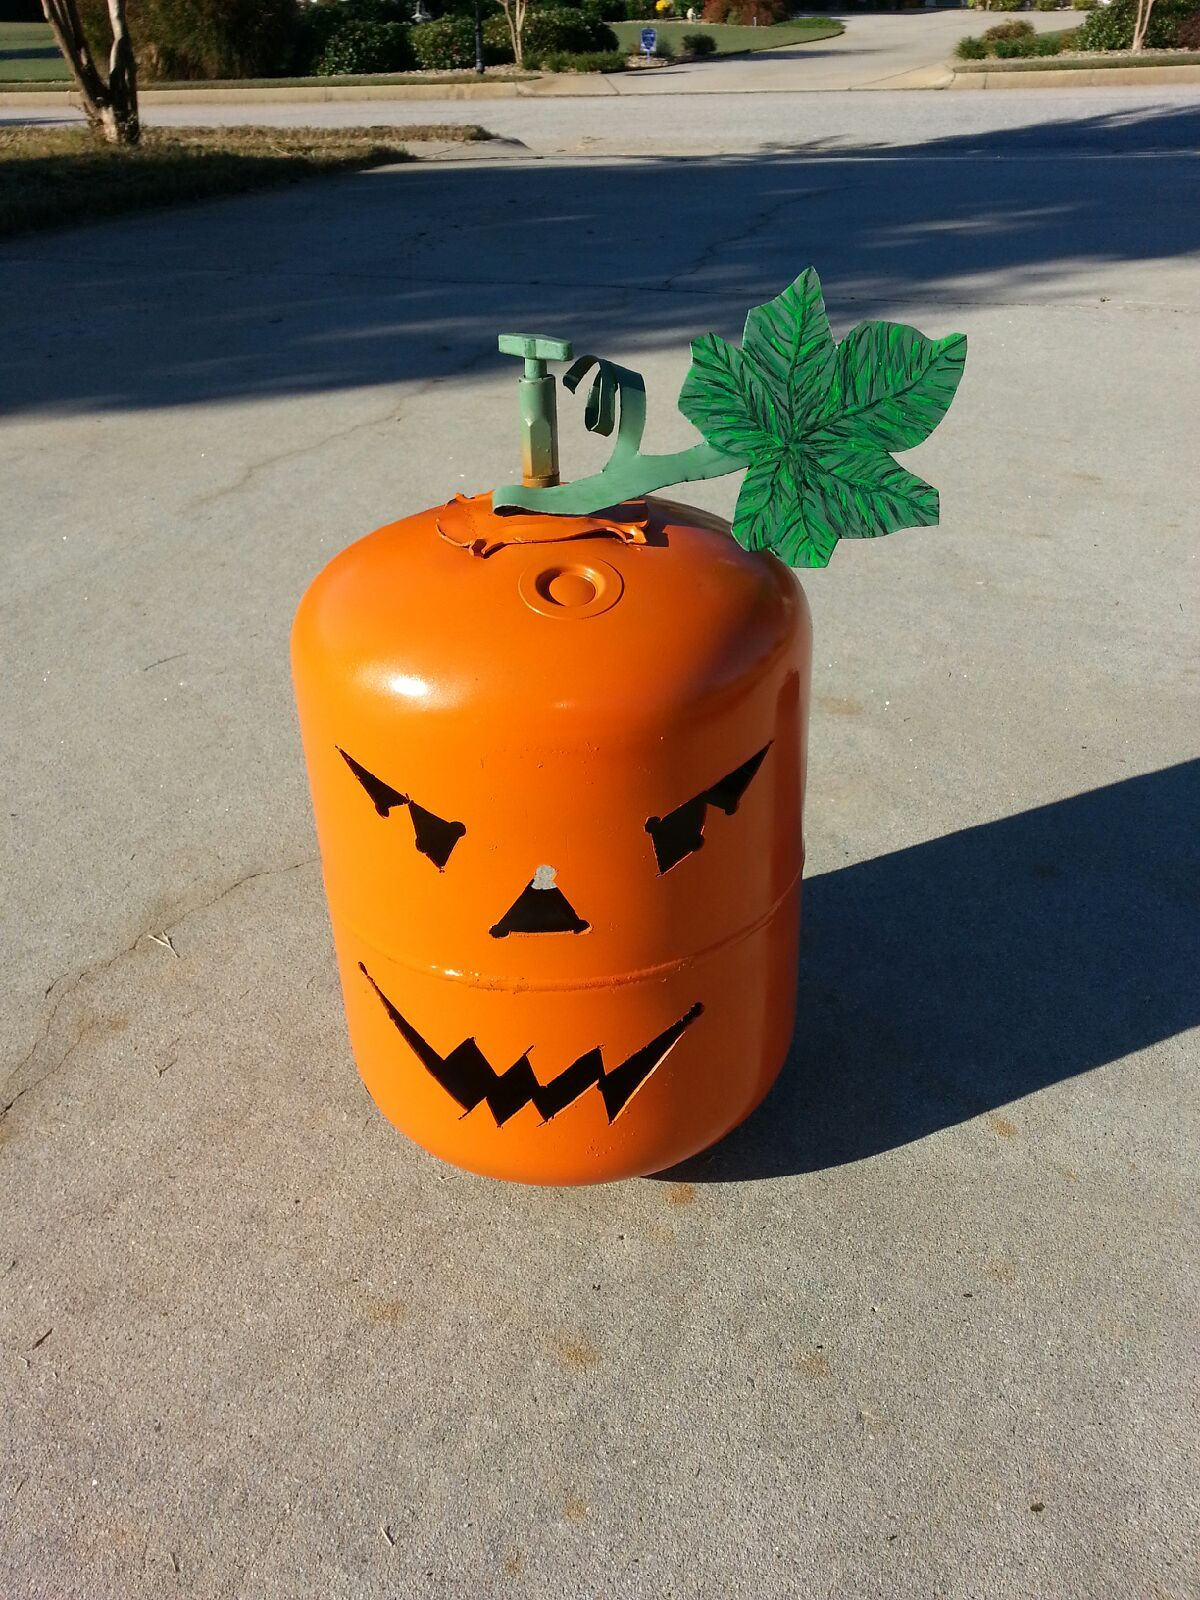 Recycled this r22 jug now its a jack o'lantern. (With